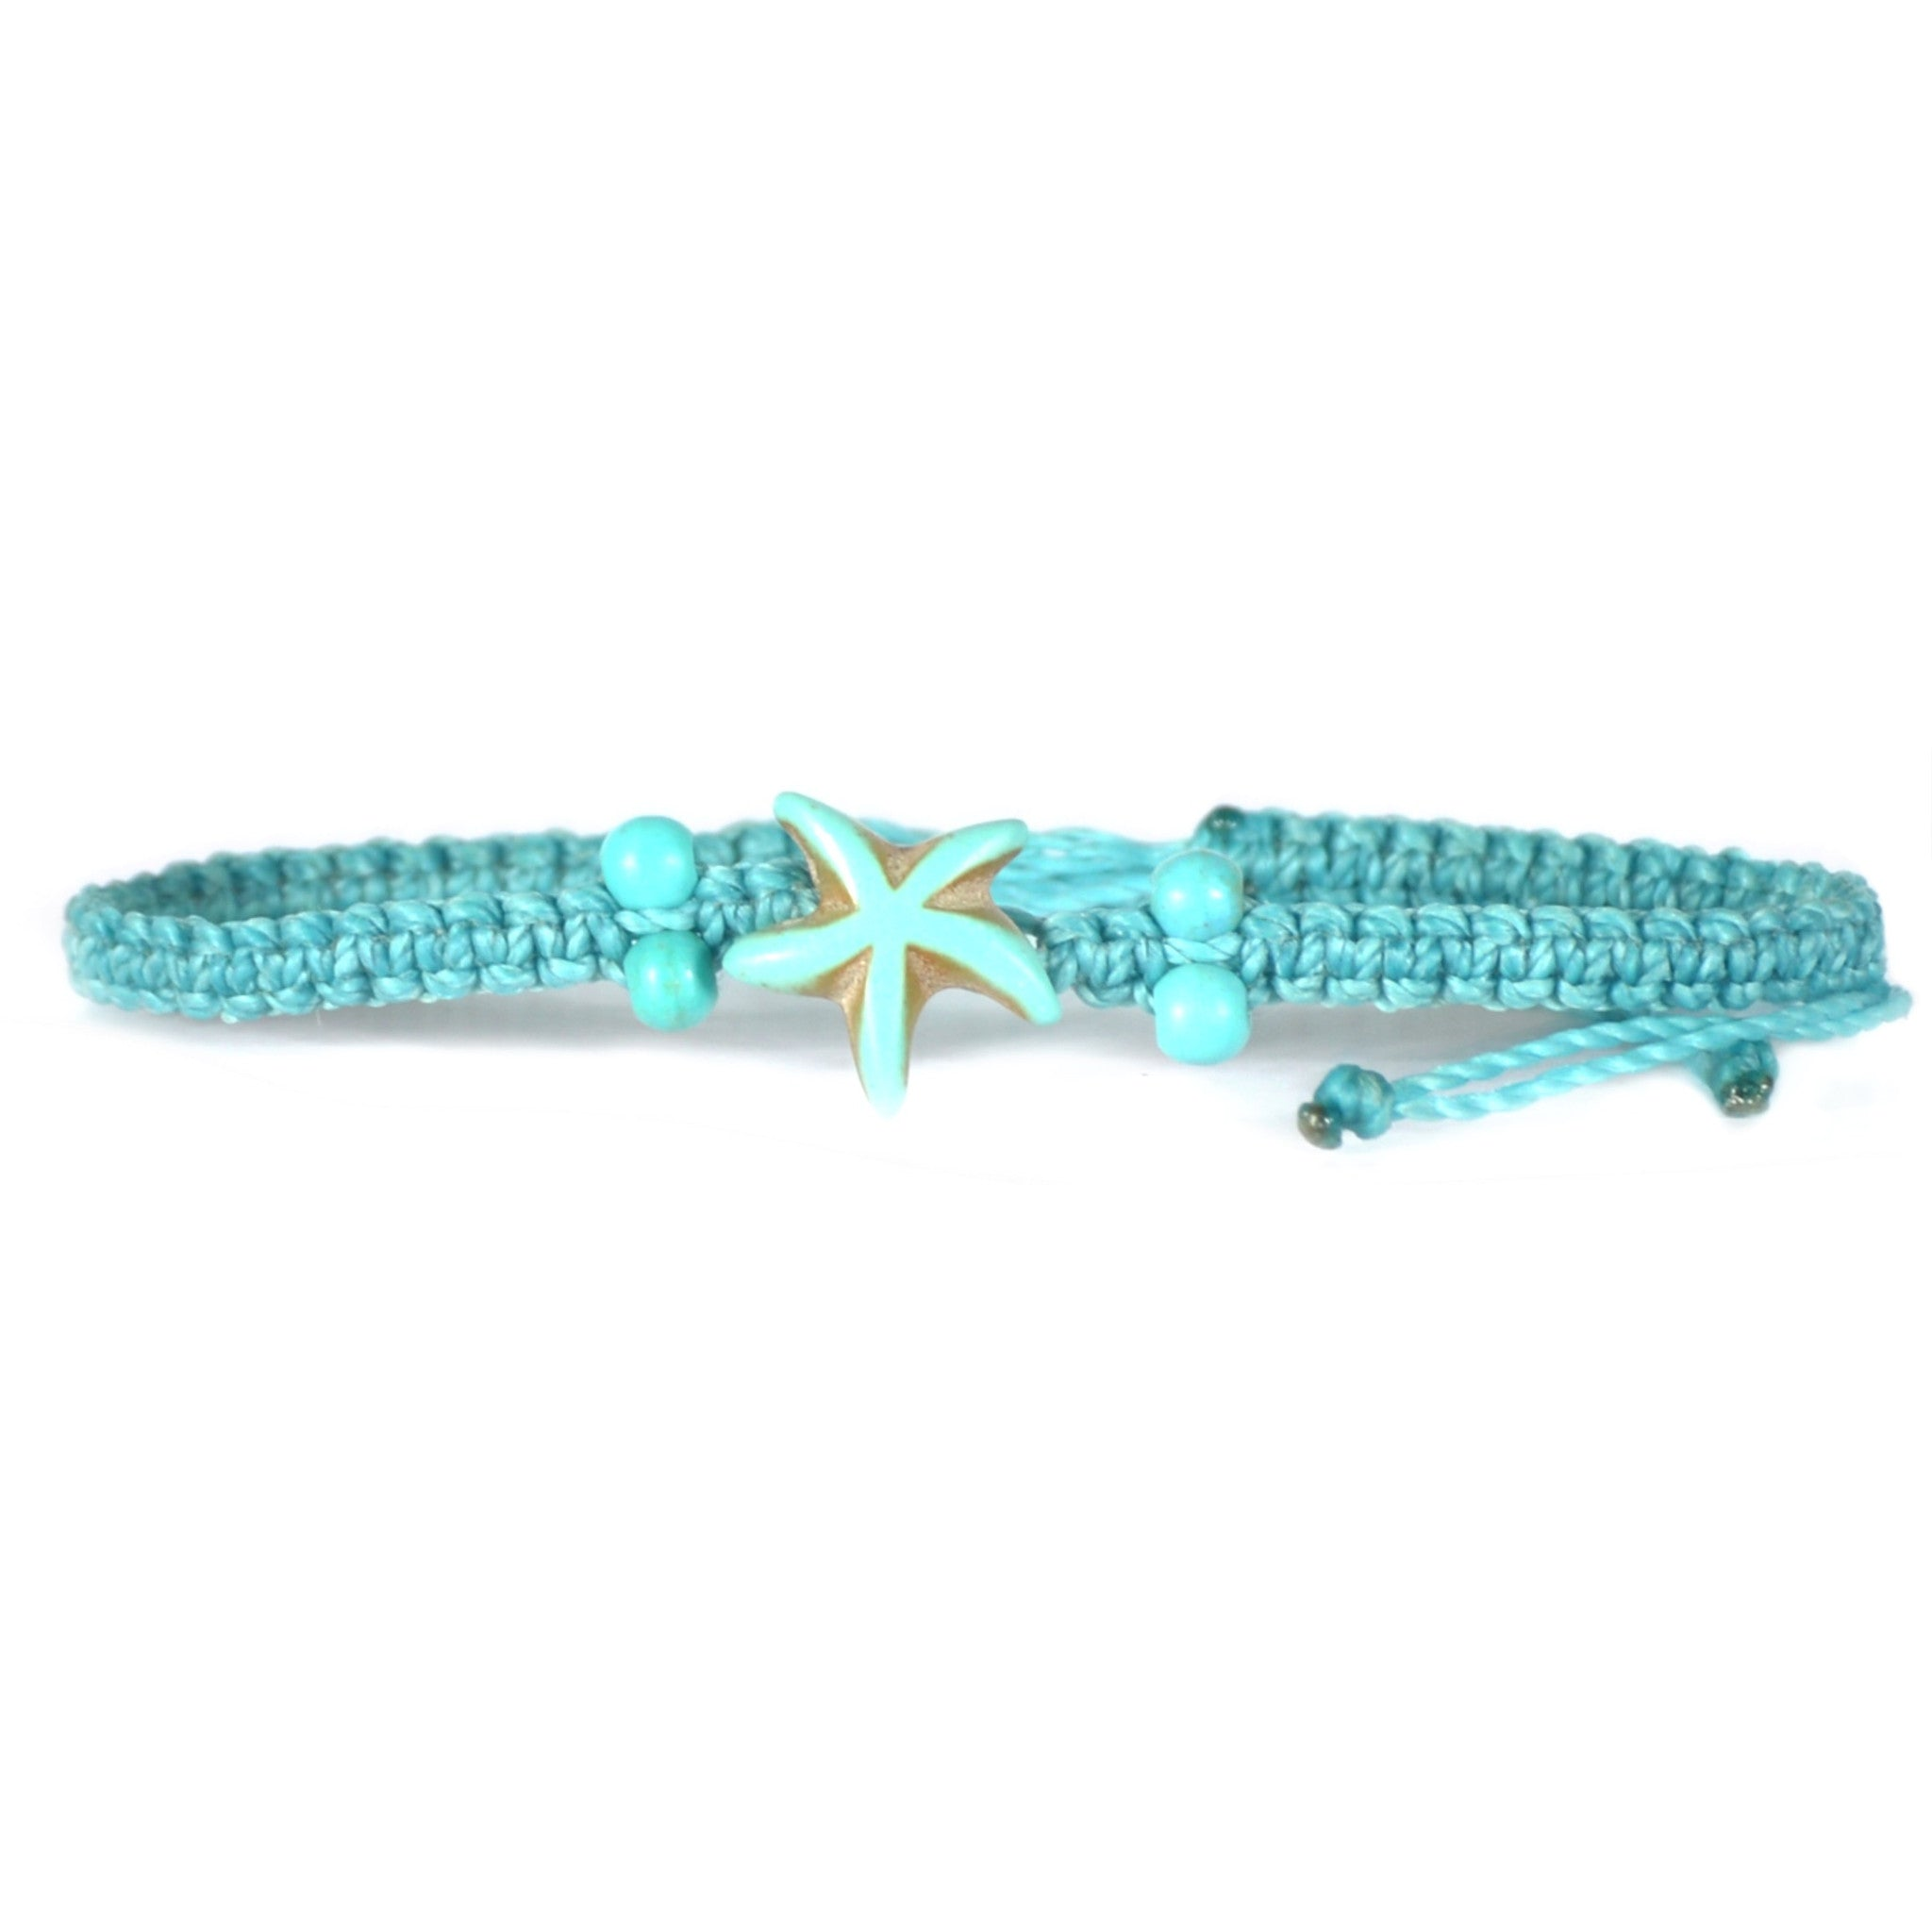 Beaded Turquoise Star Fish Bracelet